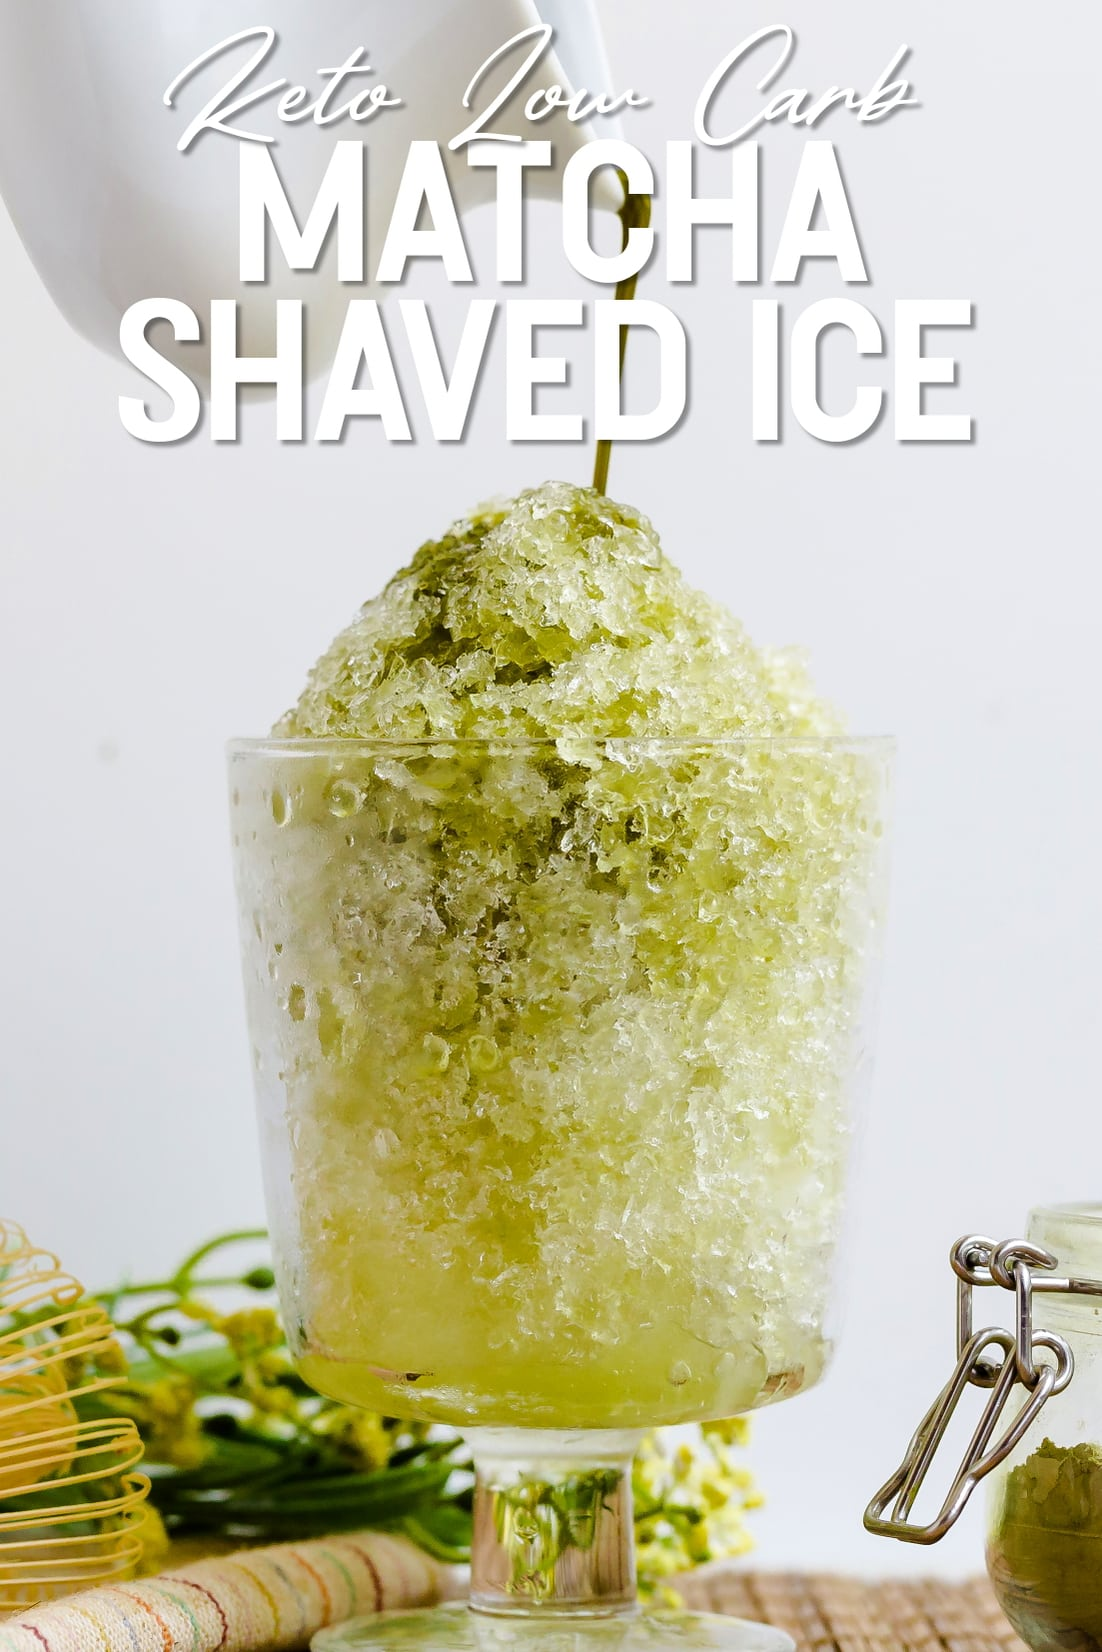 Keto sugar free Matcha Shaved Ice syrup being poured on top of shaved ice